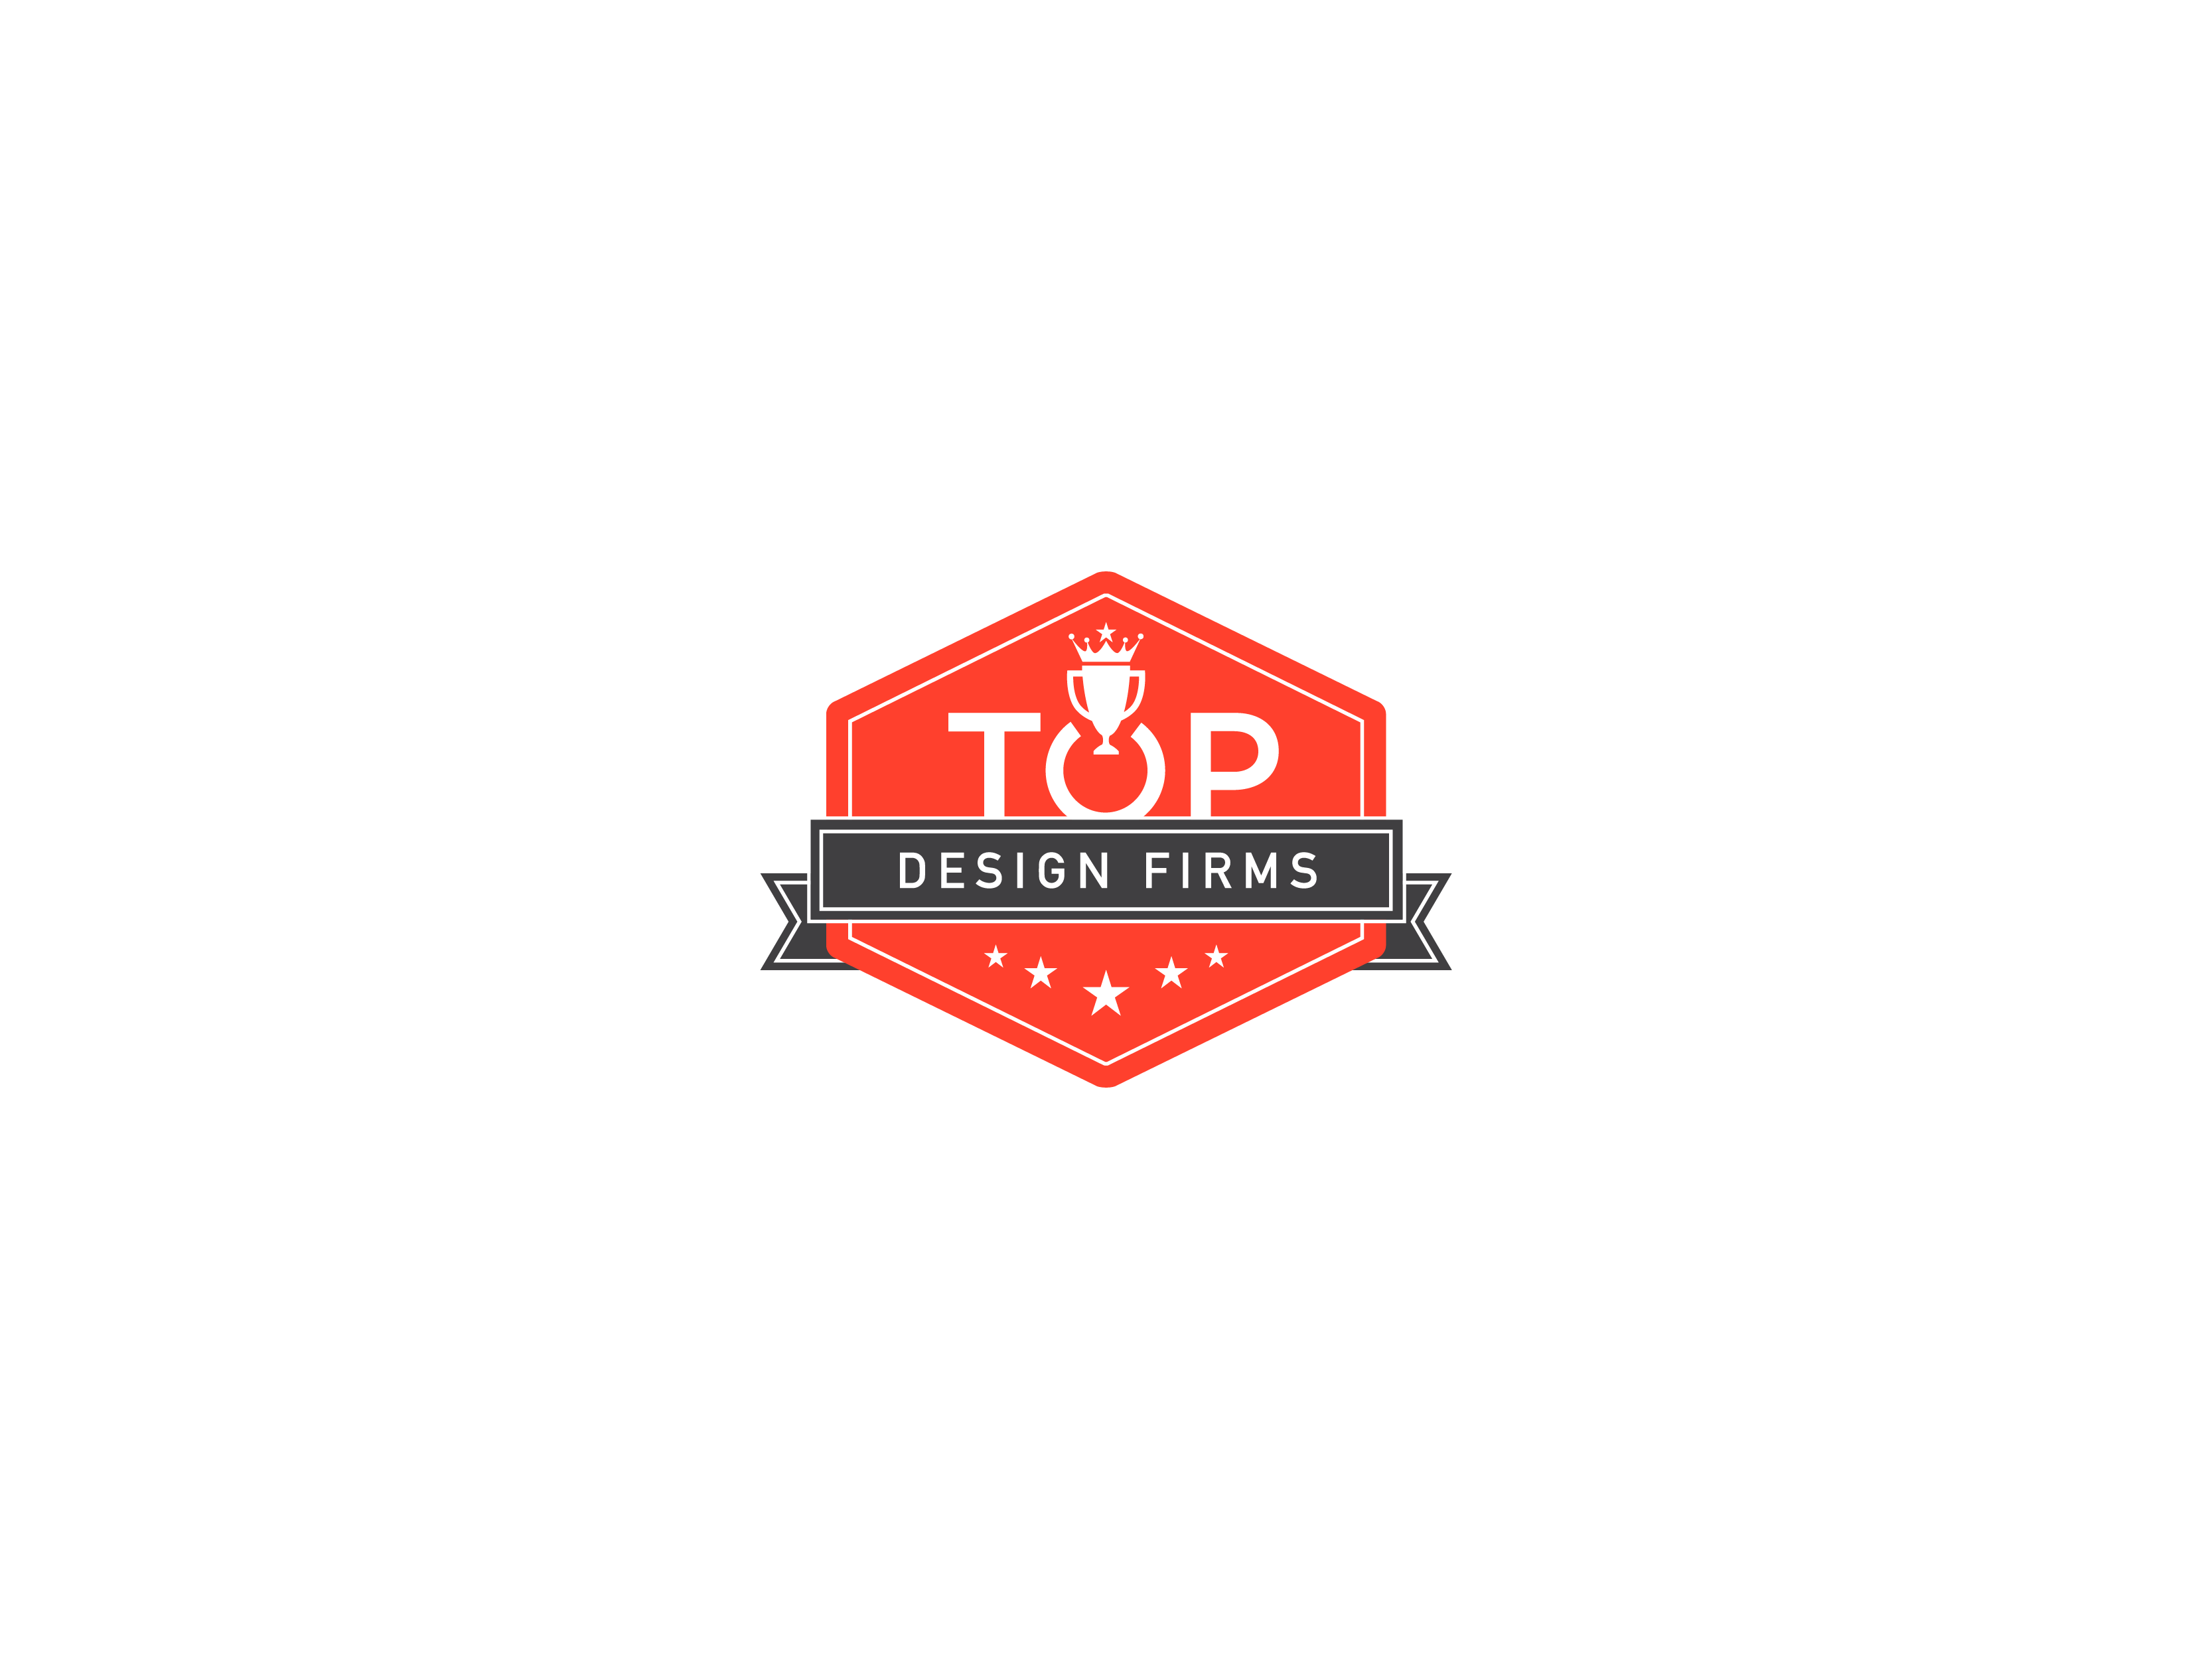 Tdf announces nationwide top 10 web design firms for july 2016 for Design strategy firms nyc